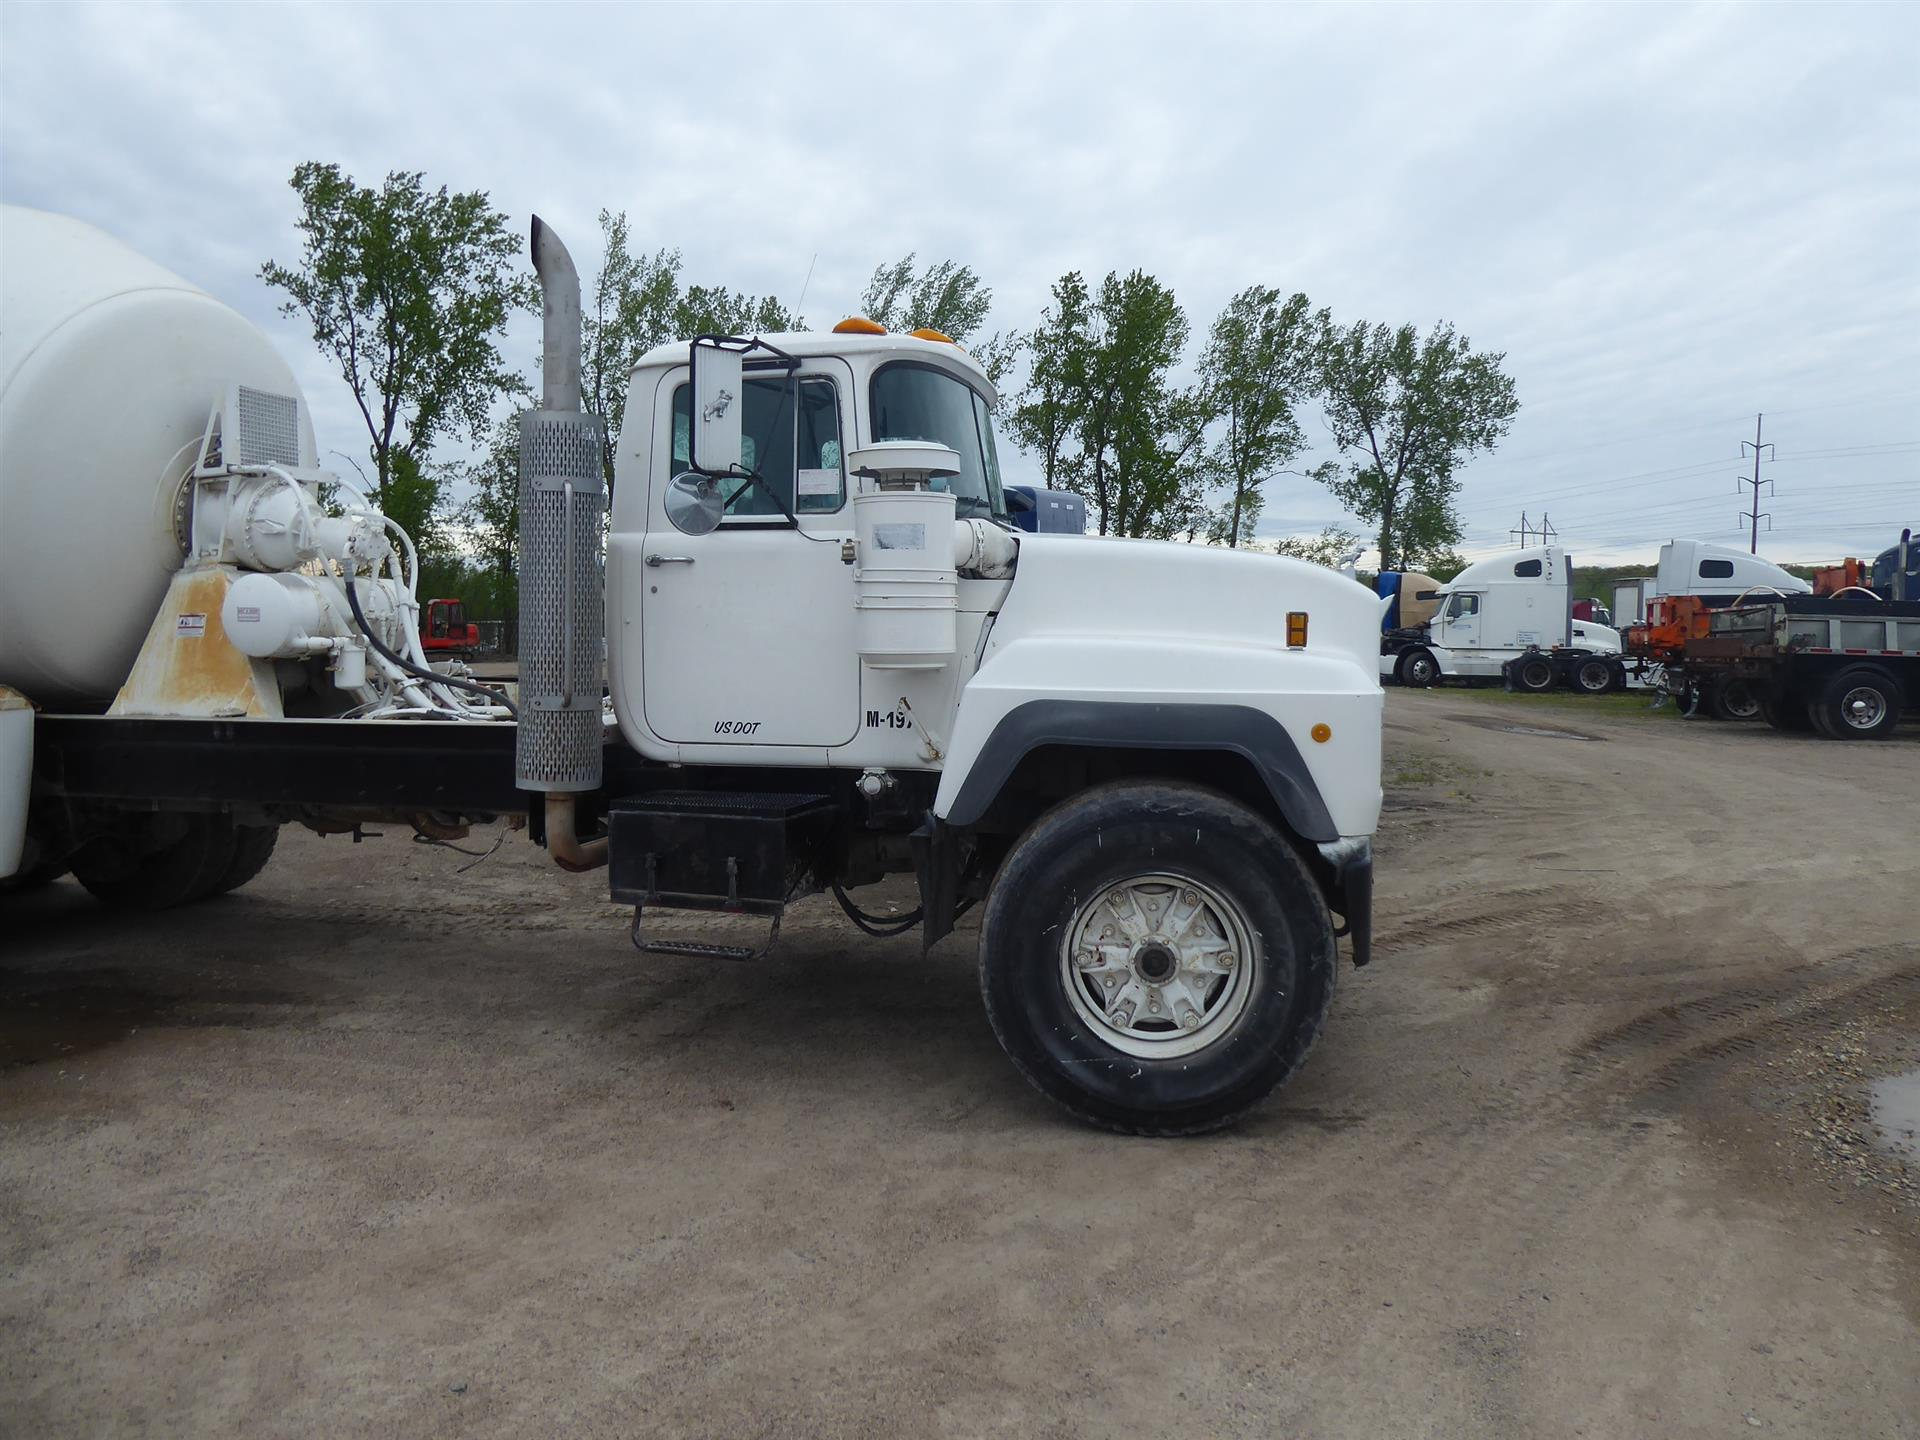 1997 Mack rd688s for sale-59220074